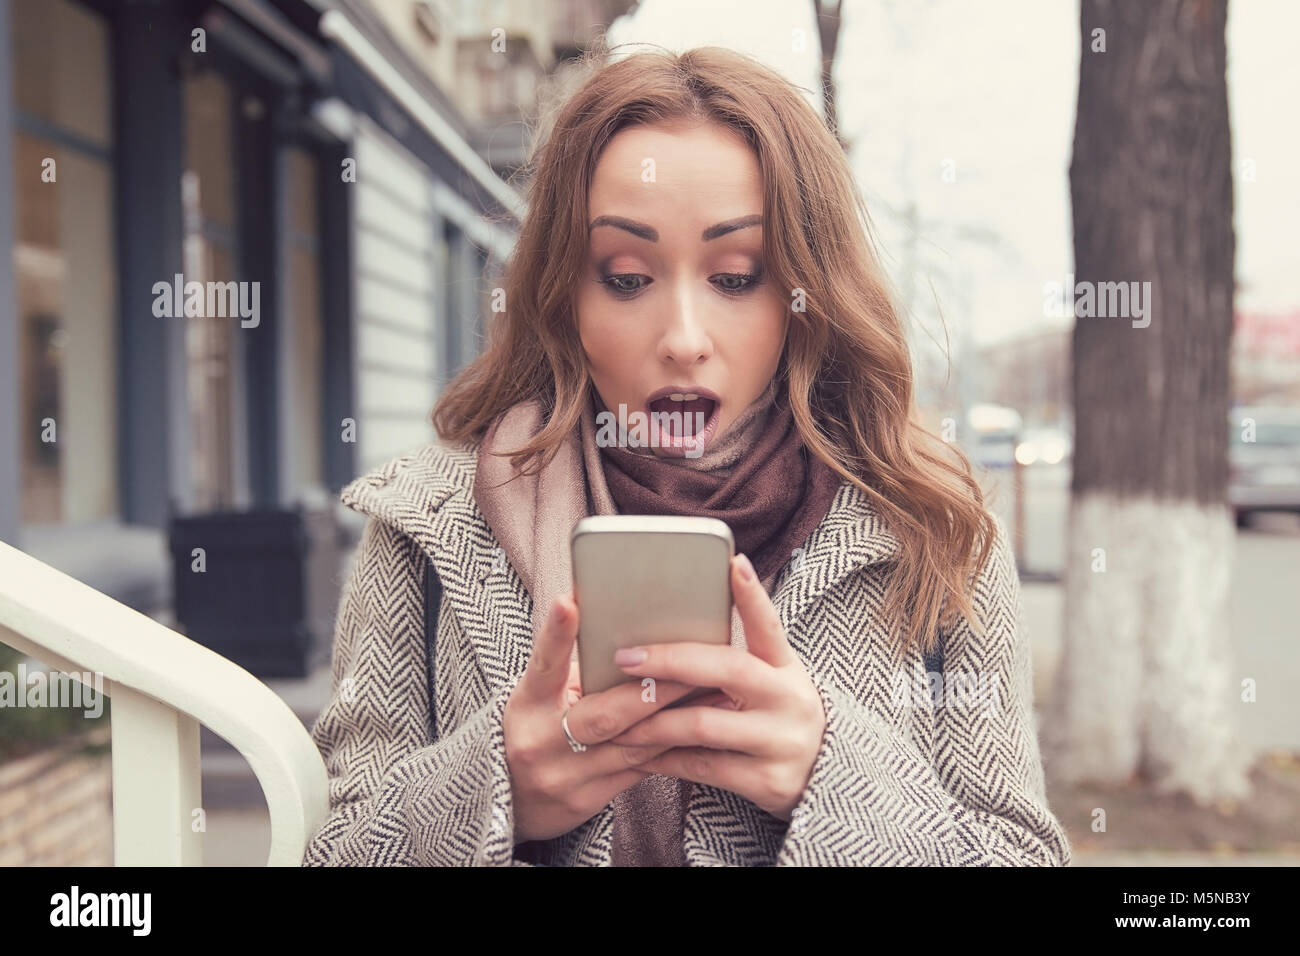 SMS. Funny shocked anxious girl looking at phone seeing bad news photos message with surprised face expression on - Stock Image